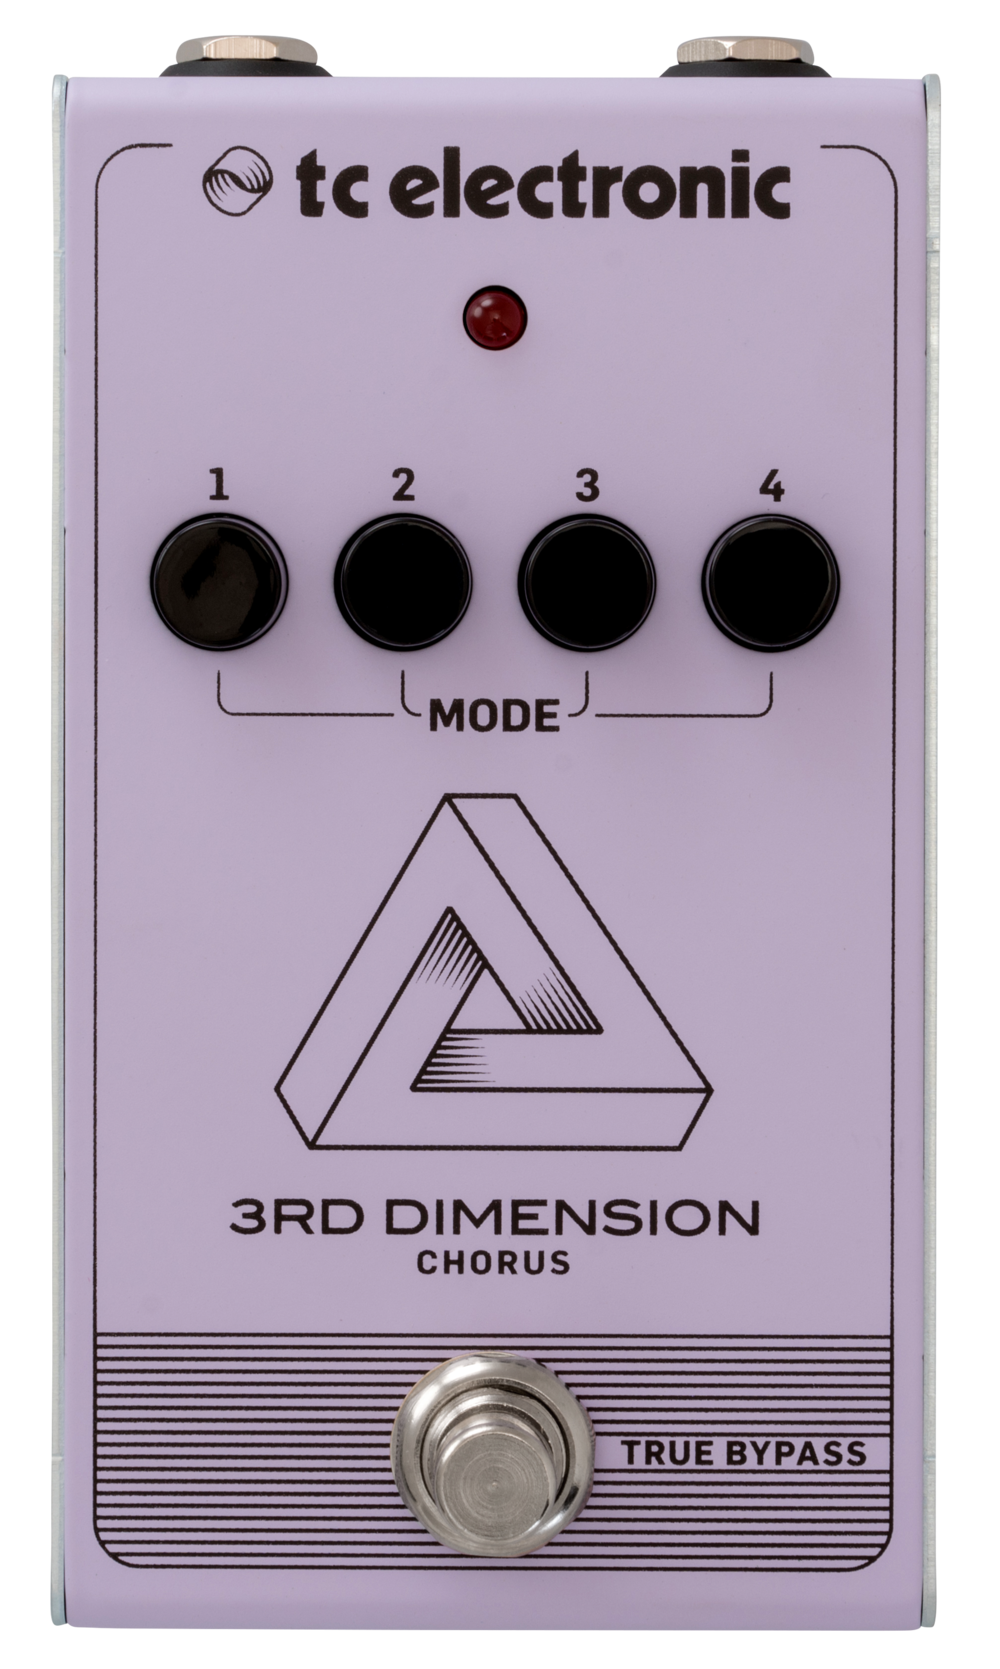 3rd-dimension-chorus-front.png